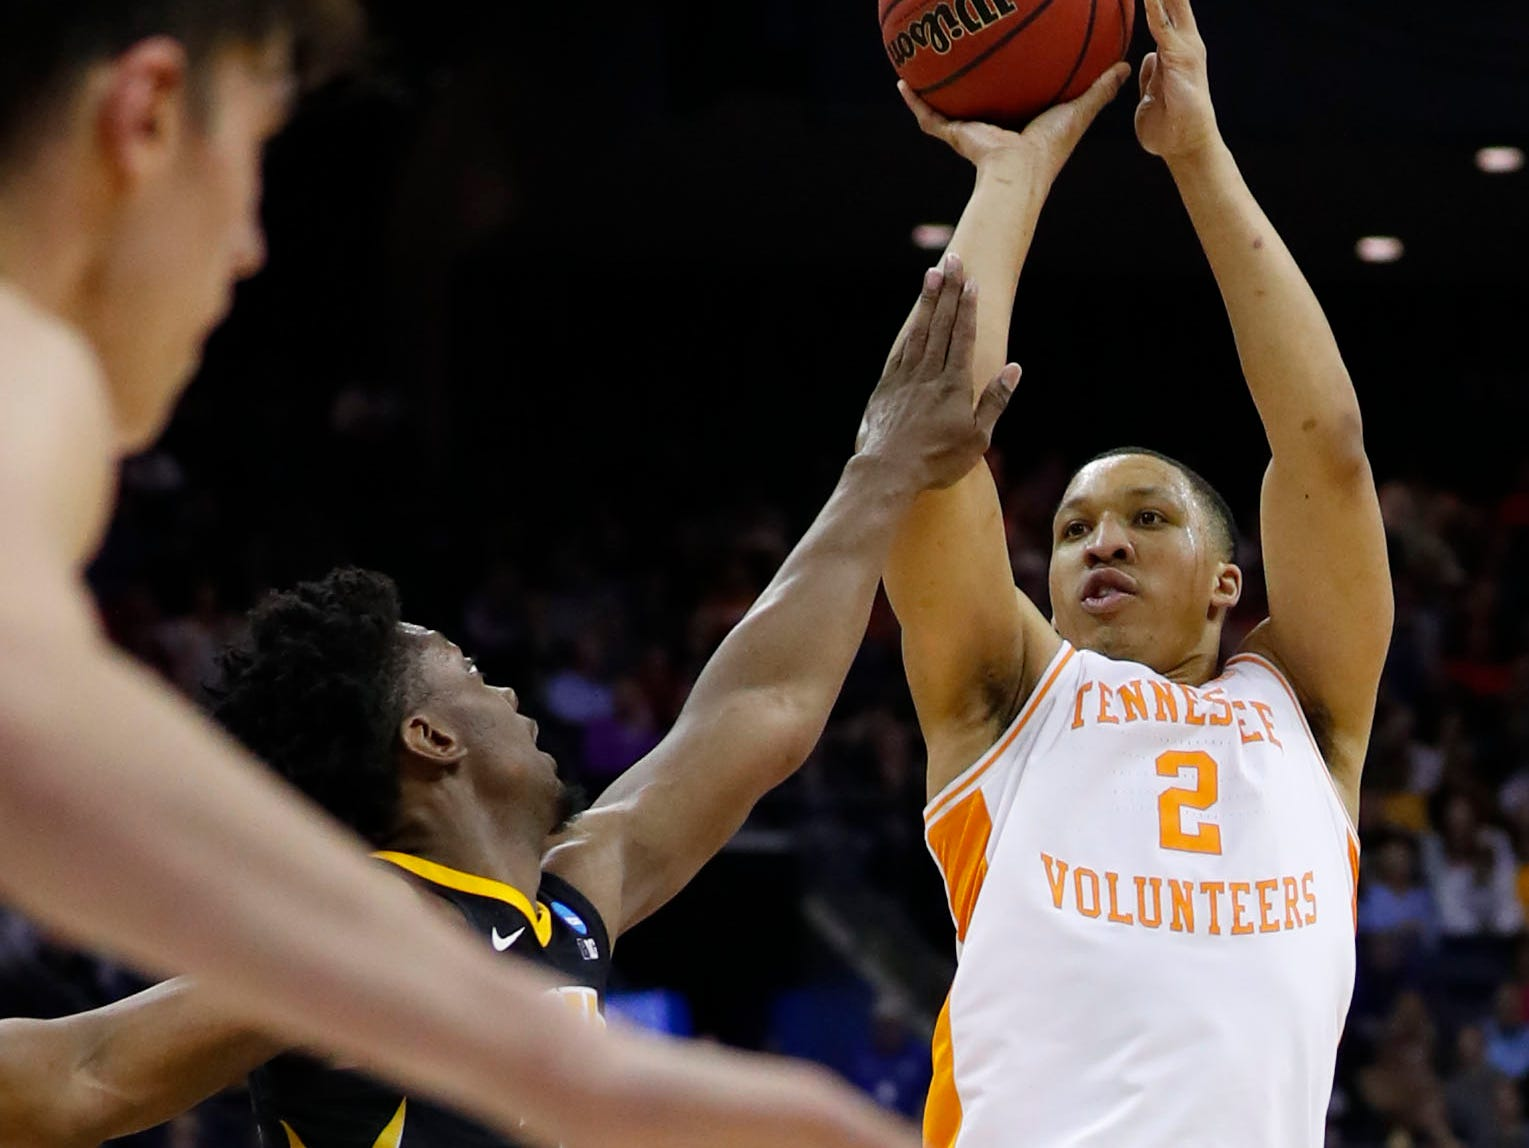 Tennessee Volunteers forward Grant Williams (2) shoots the ball in overtime against the Iowa Hawkeyes in the second round of the 2019 NCAA Tournament at Nationwide Arena.